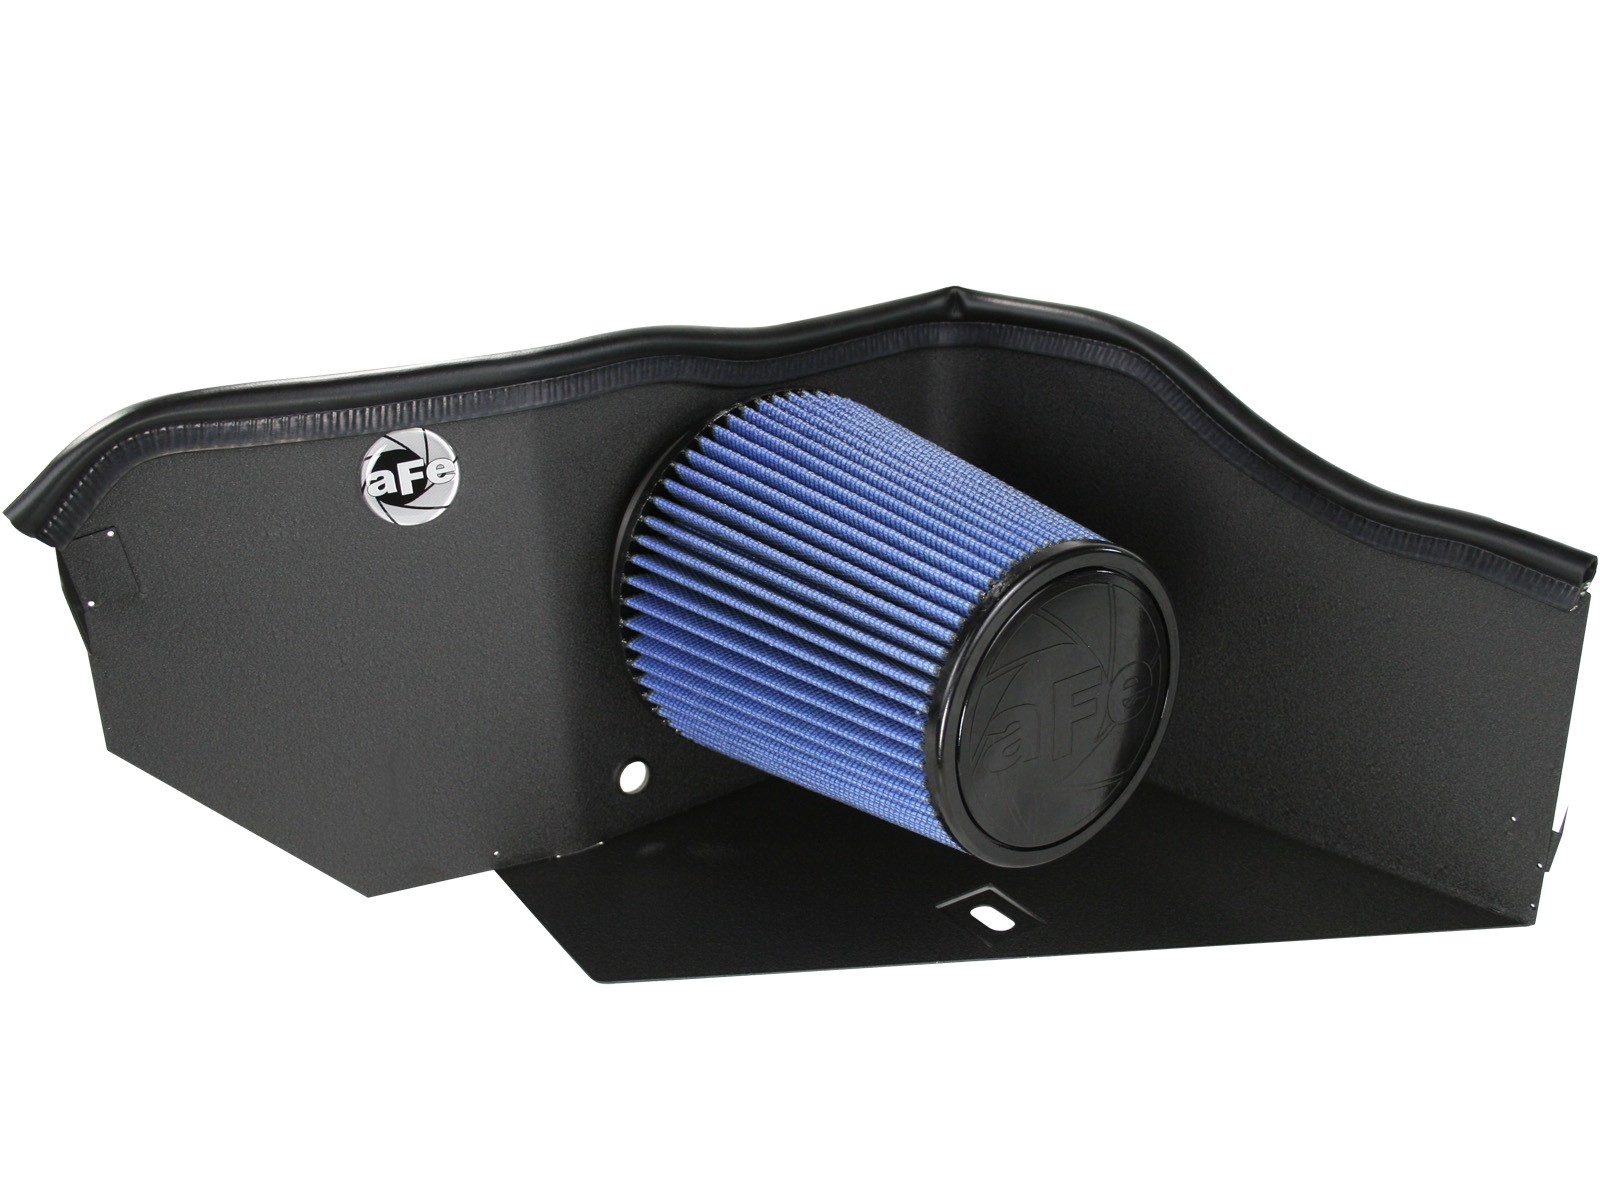 aFe POWER 54-10531 Magnum FORCE Stage-1 Pro 5R Cold Air Intake System